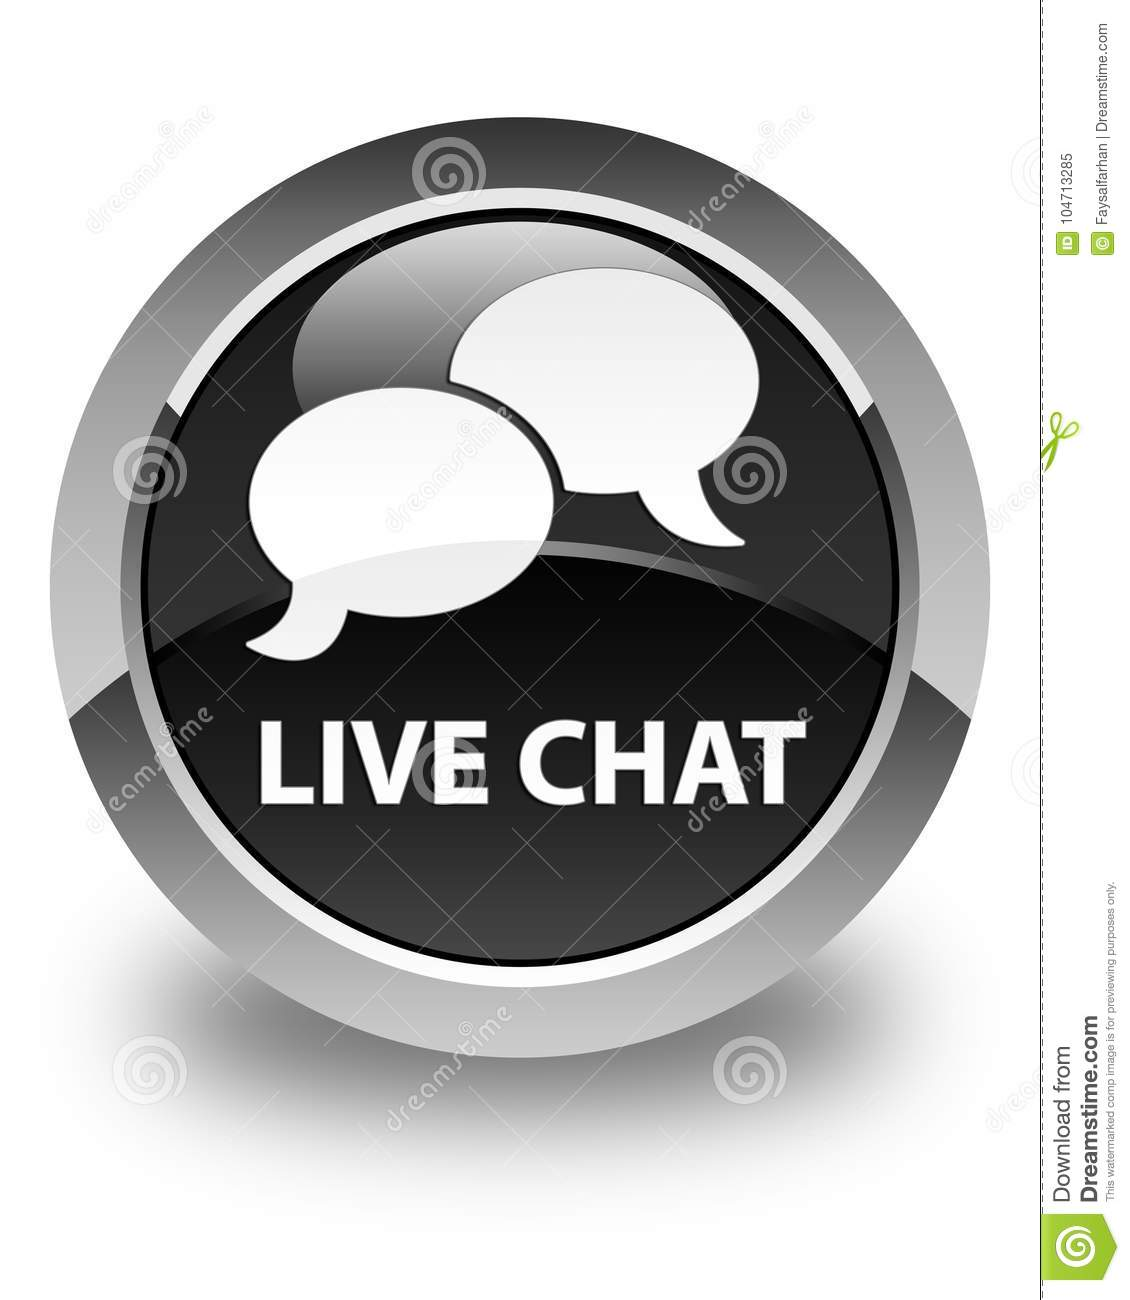 Live Chat Glossy Black Round Button Stock Illustration